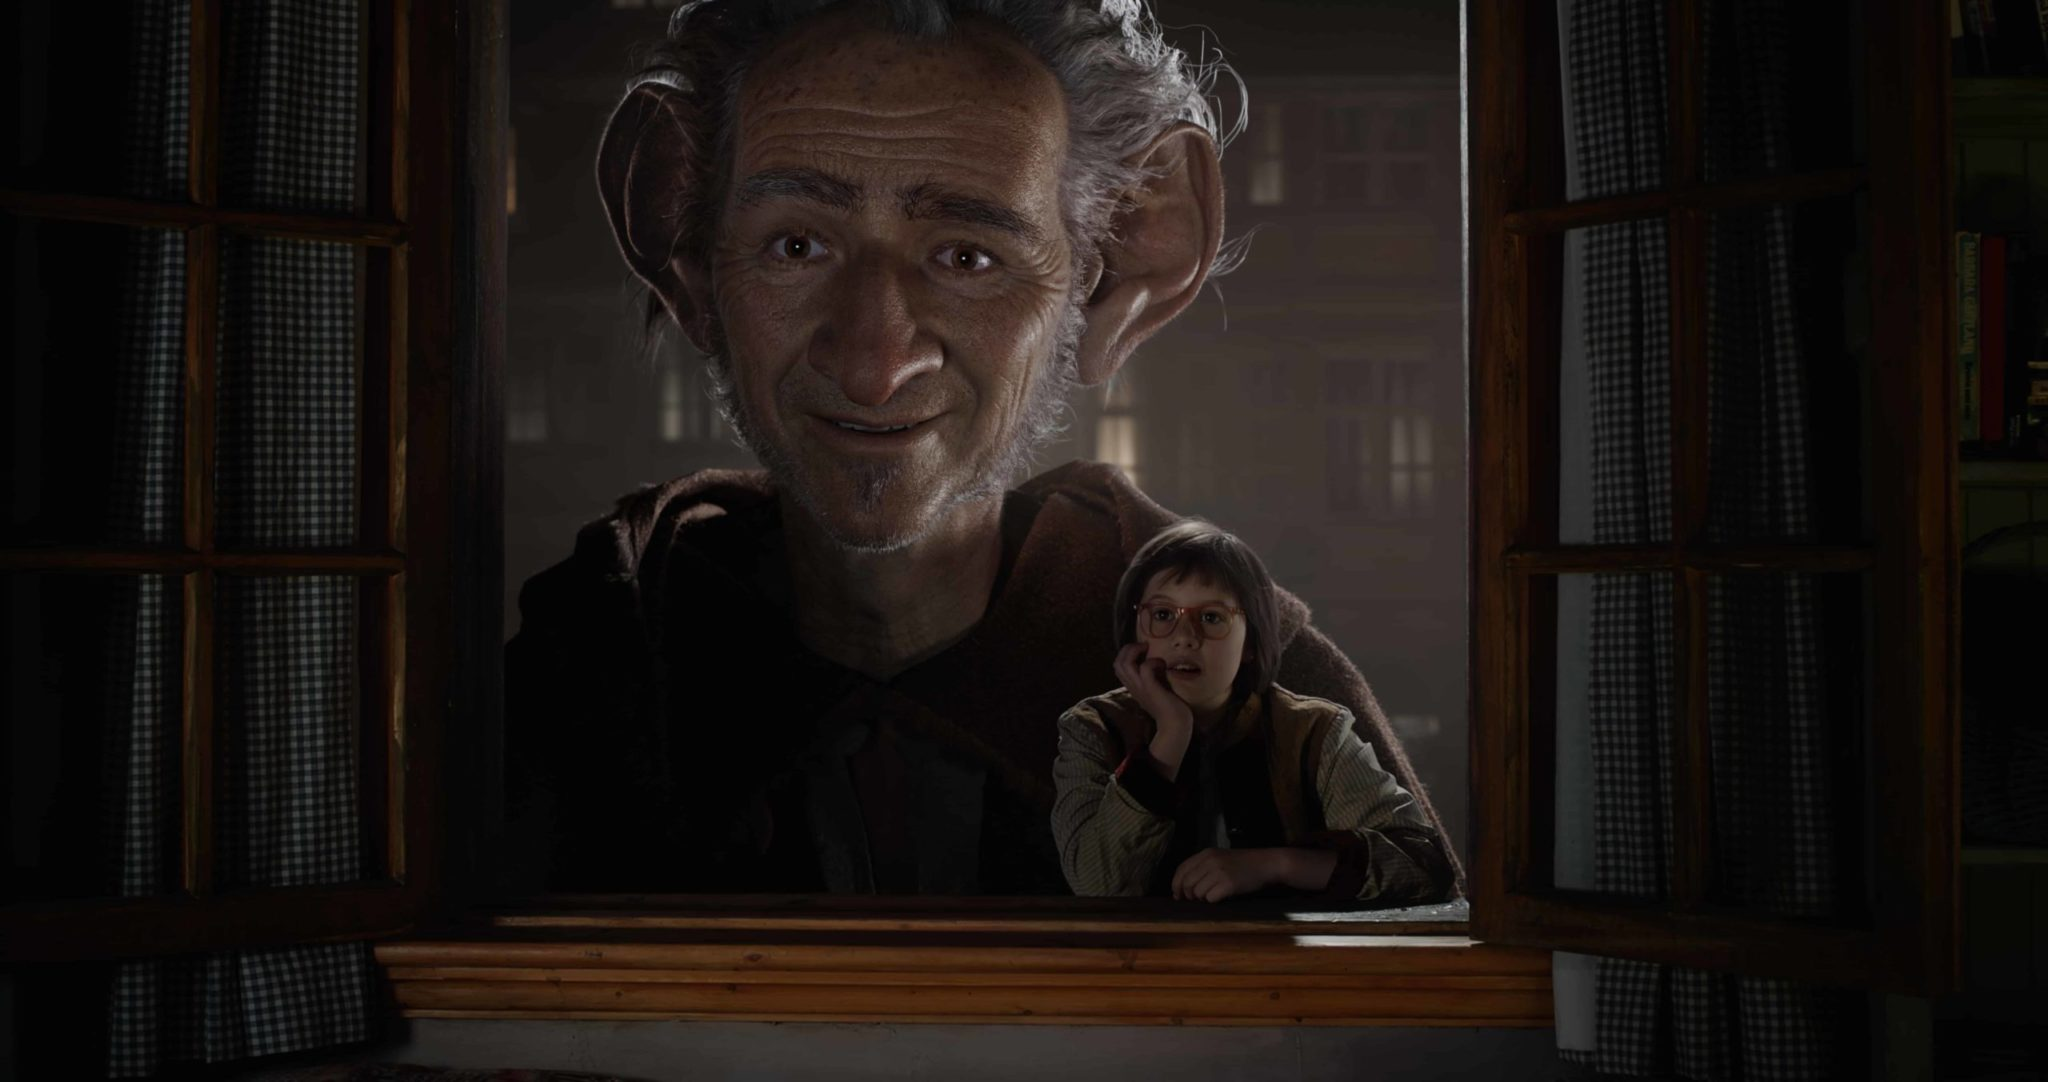 """Disney""""s THE BFG is the imaginative story of a young girl named Sophie (Ruby Barnhill) and the Big Friendly Giant (Oscar(R) winner Mark Rylance) who introduces her to the wonders and perils of Giant Country. Directed by Steven Spielberg based on Roald Dahl's beloved classic, the film opens in theaters nationwide on July 1."""